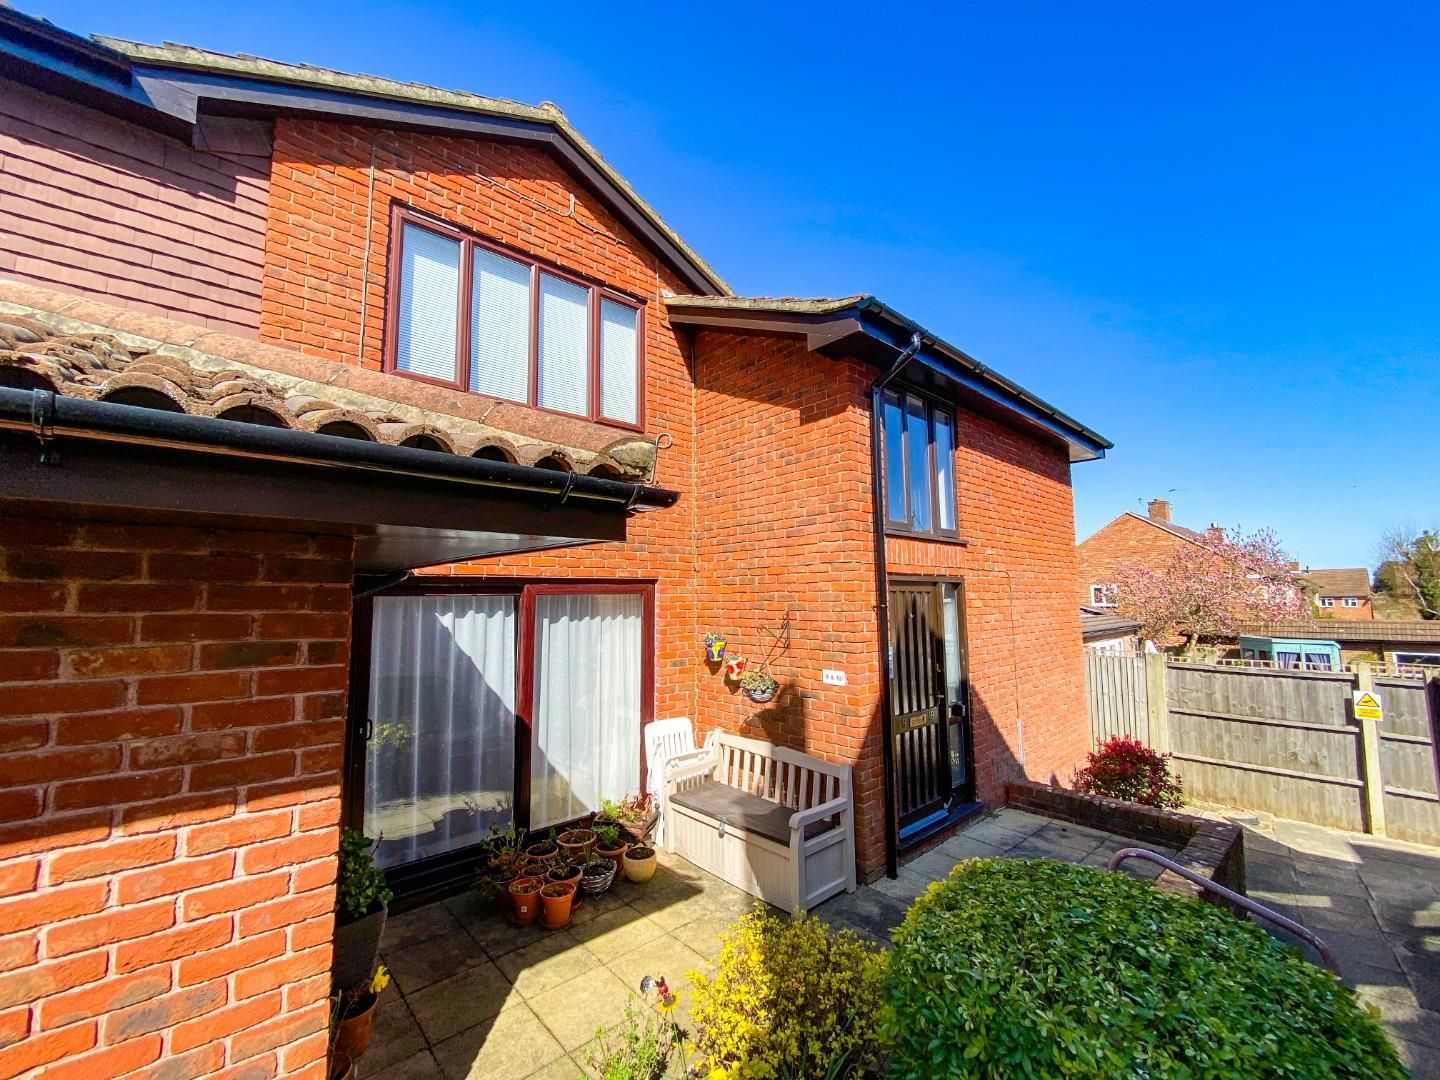 1 bed house for sale, KT18